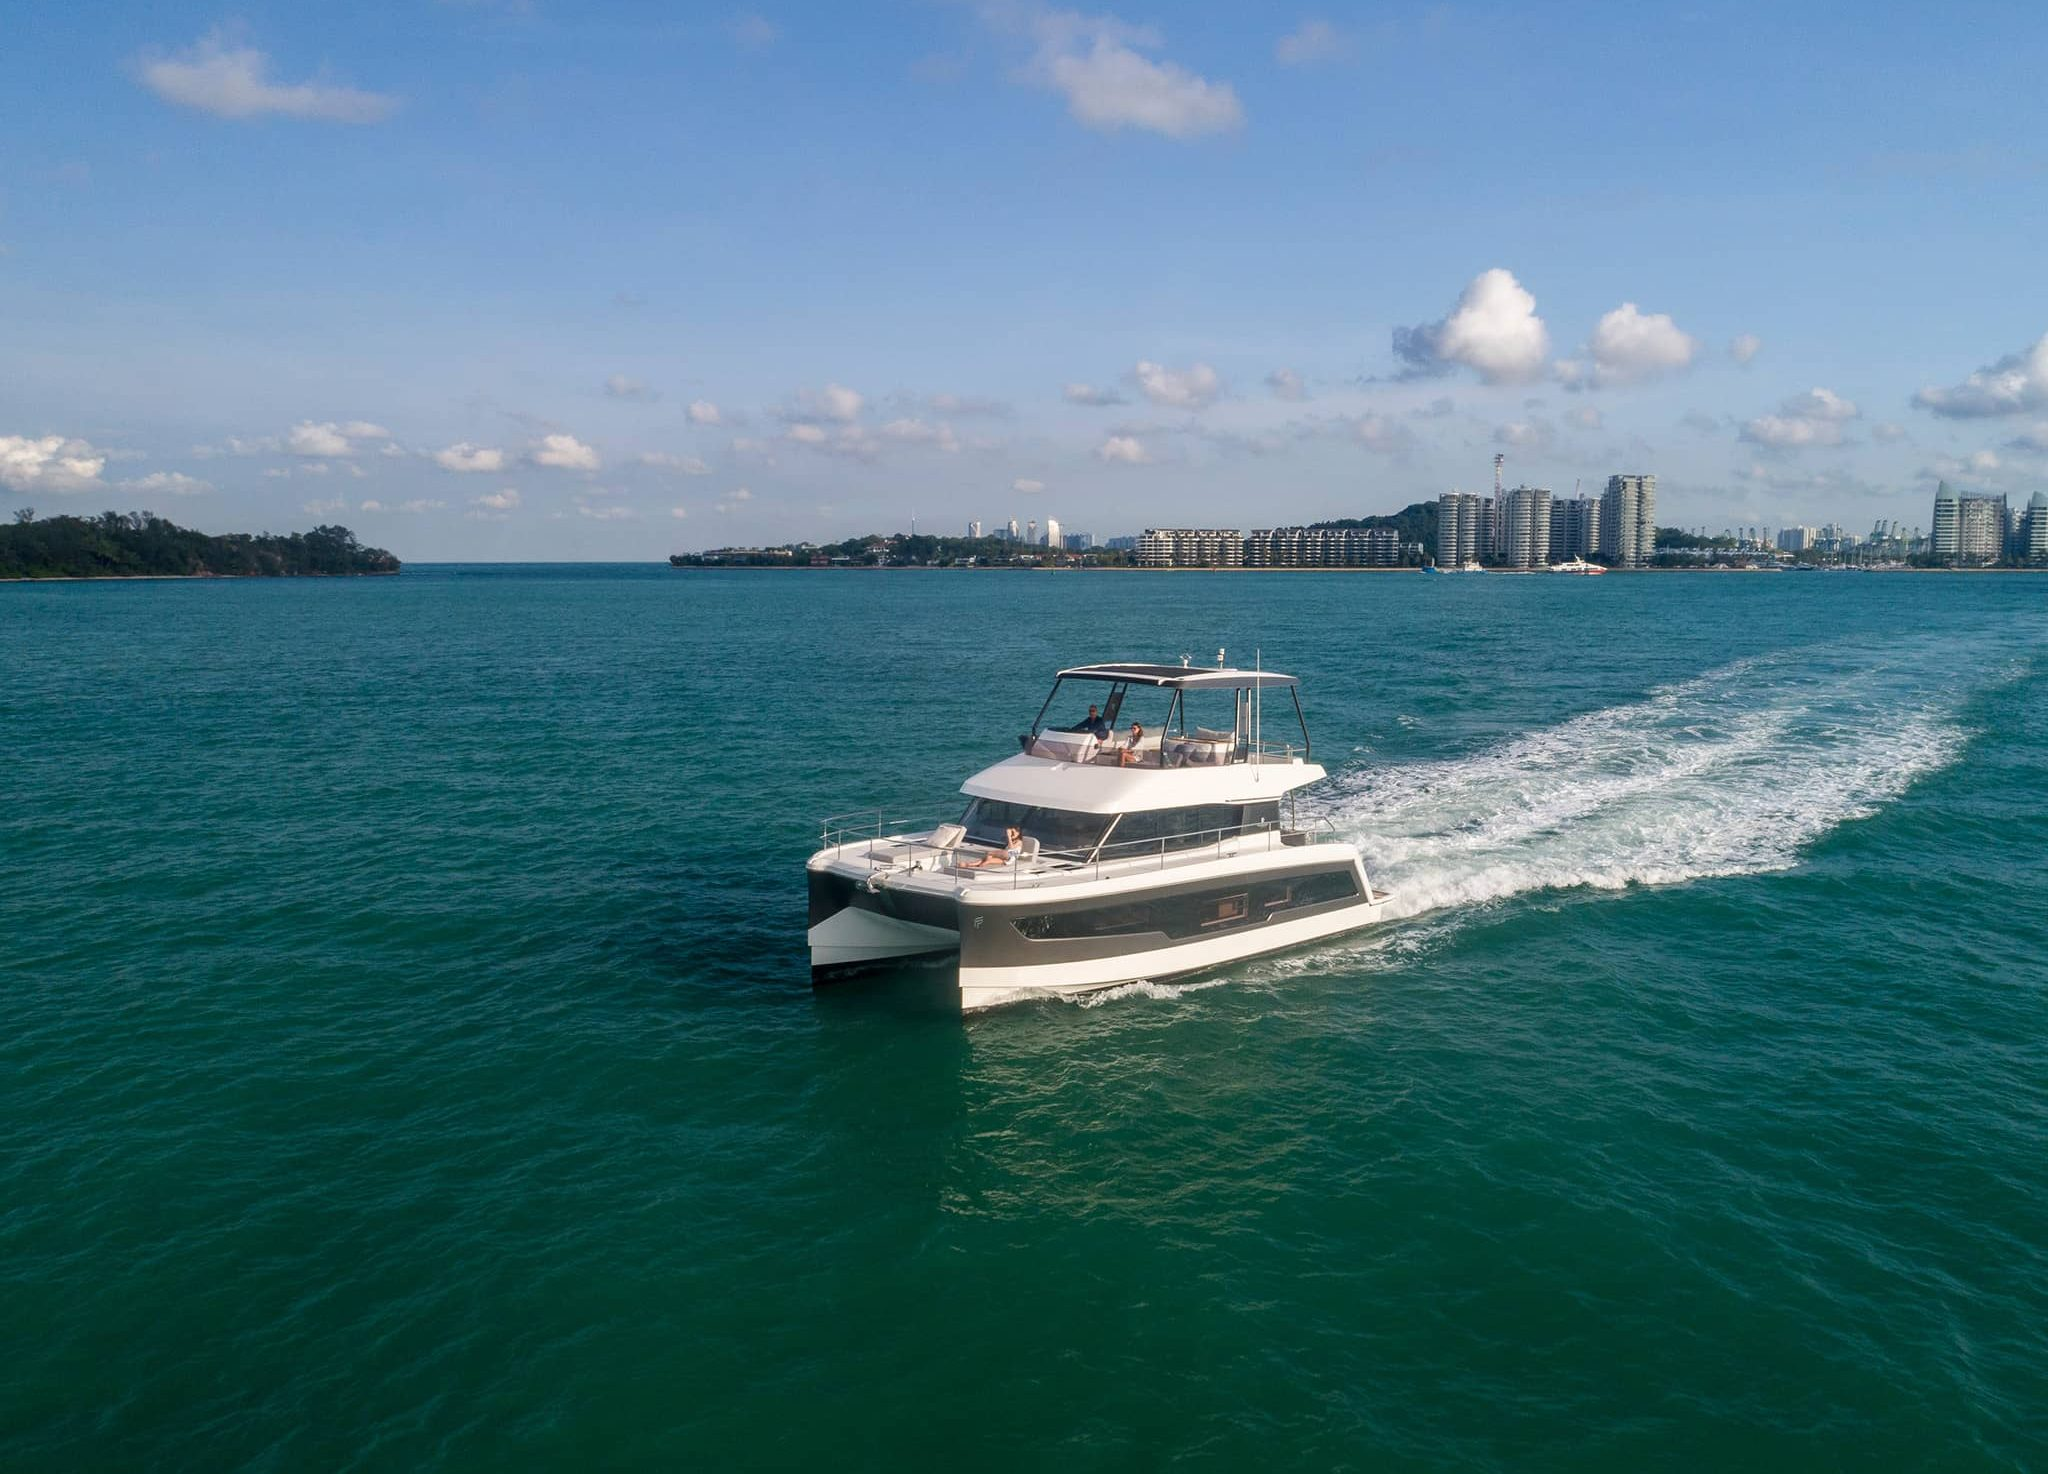 A Fountaine Pajot motor yacht cruising on an open body of water